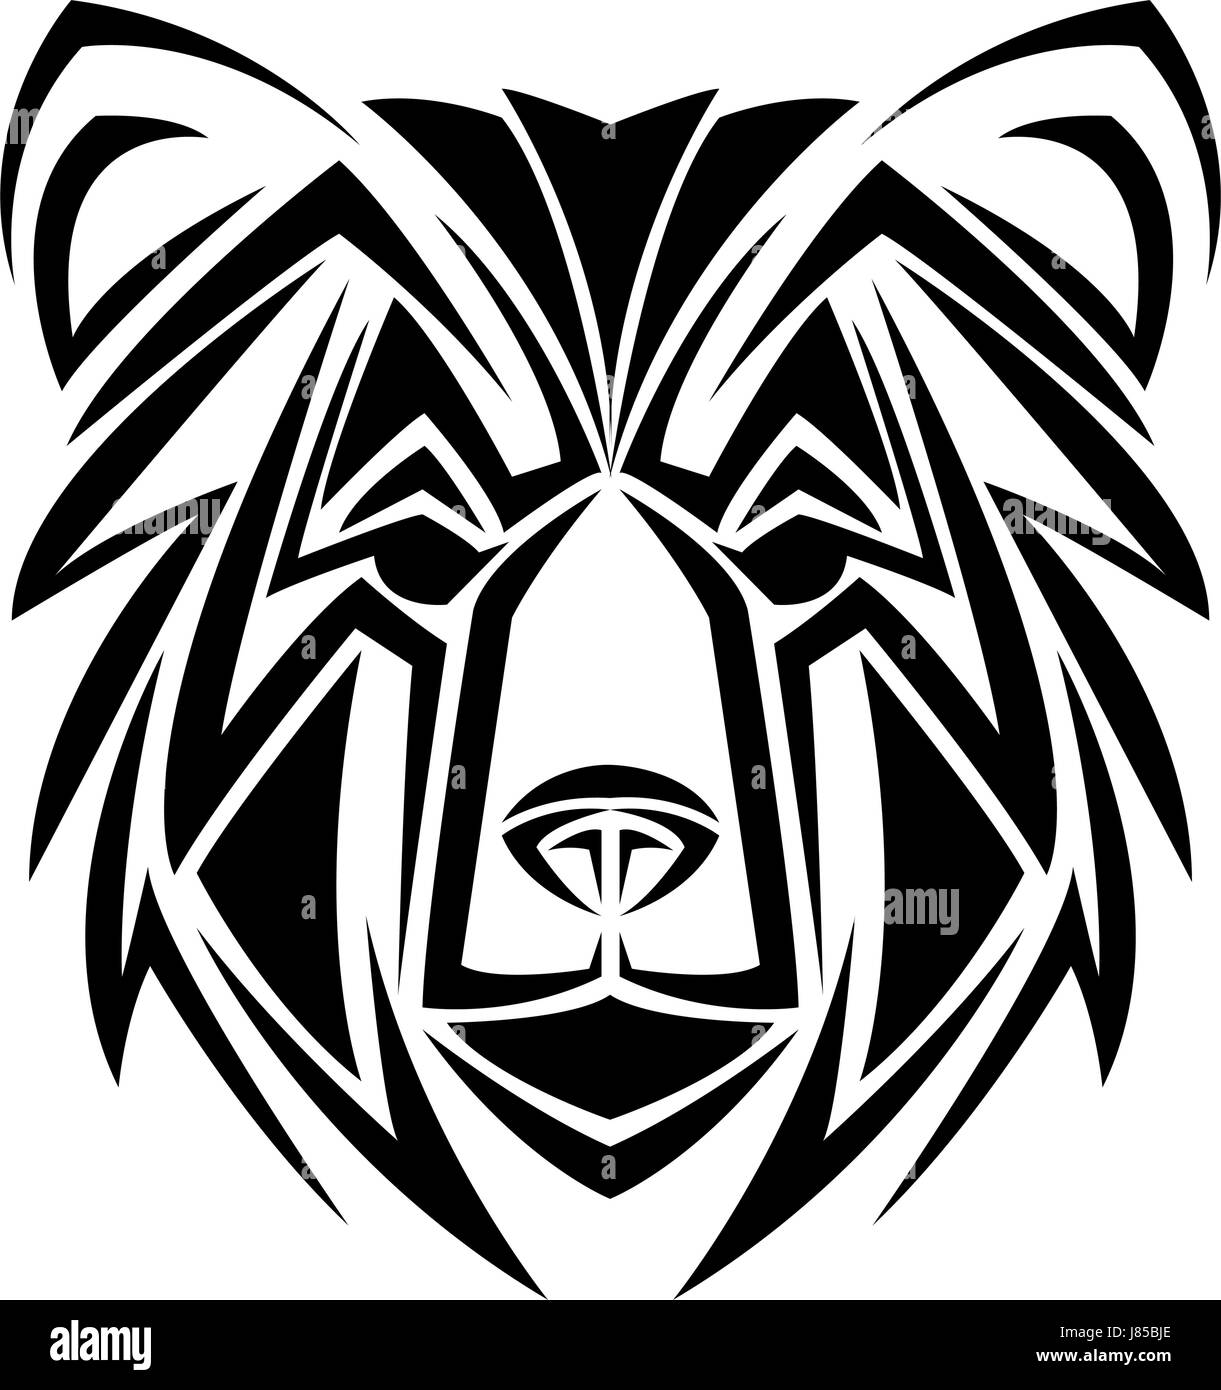 bear tribal tatto animal creativity design - Stock Image